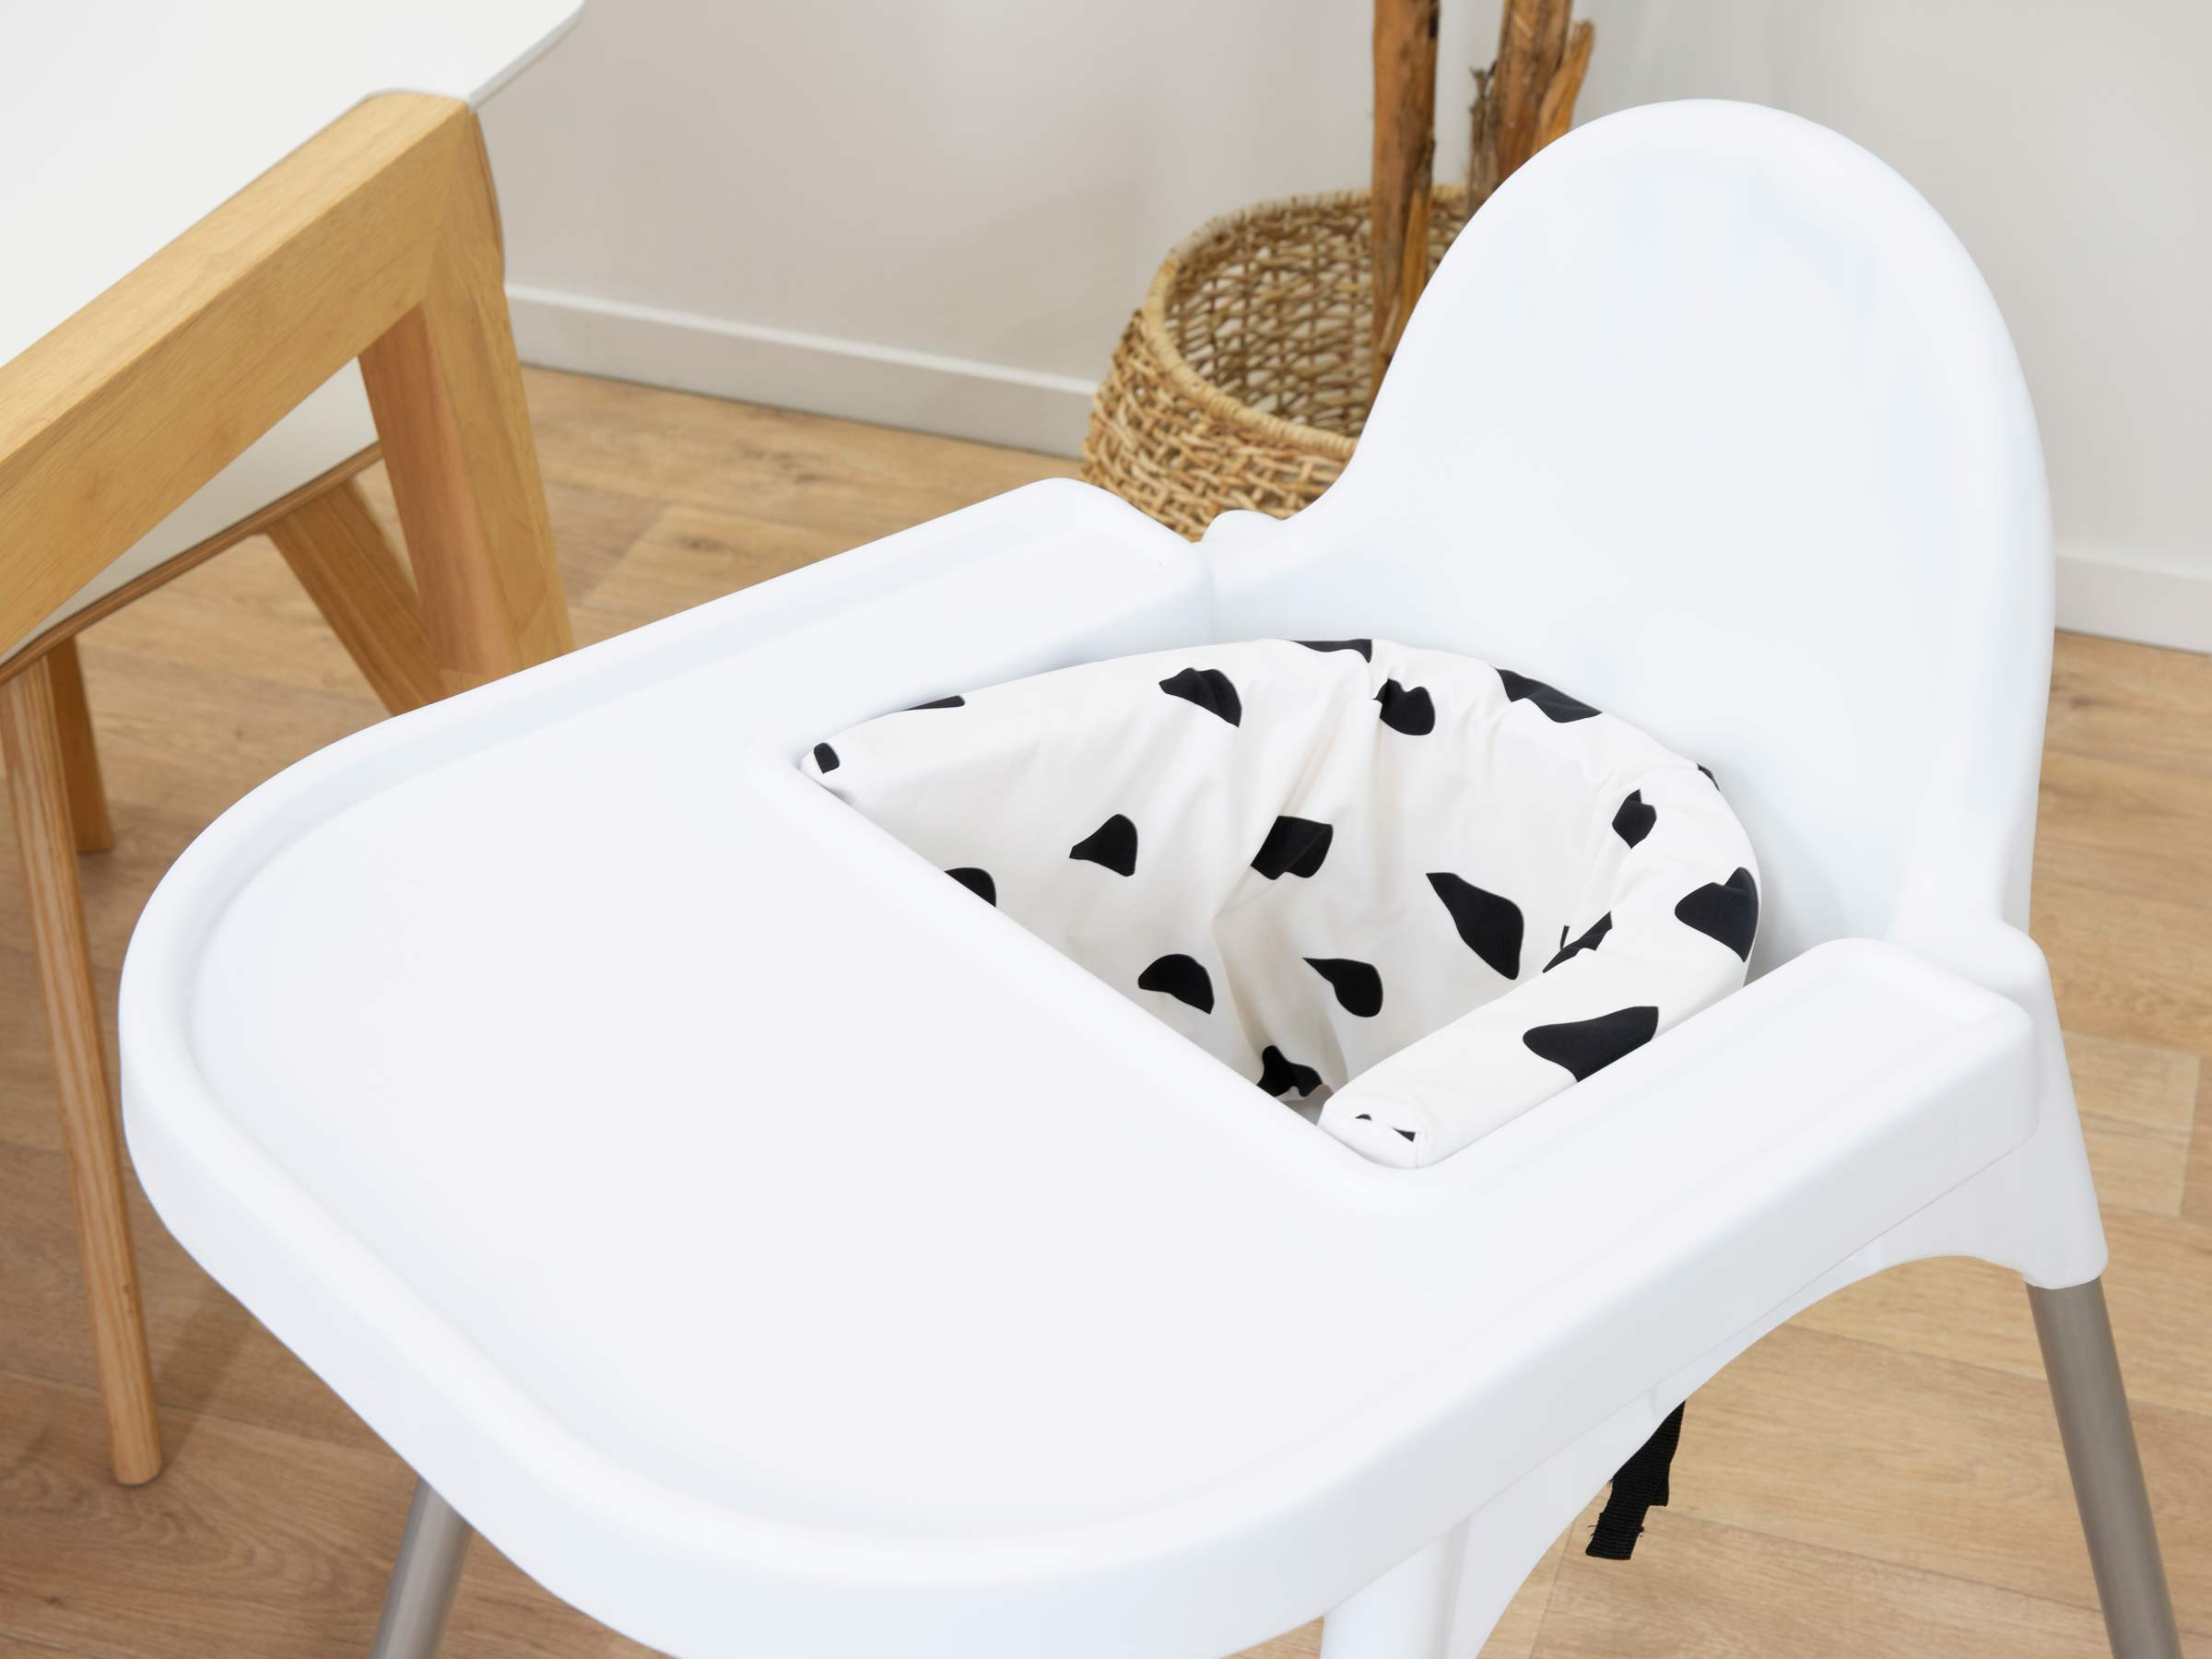 Designer Highchair Insert Cover - Monochrome Drops